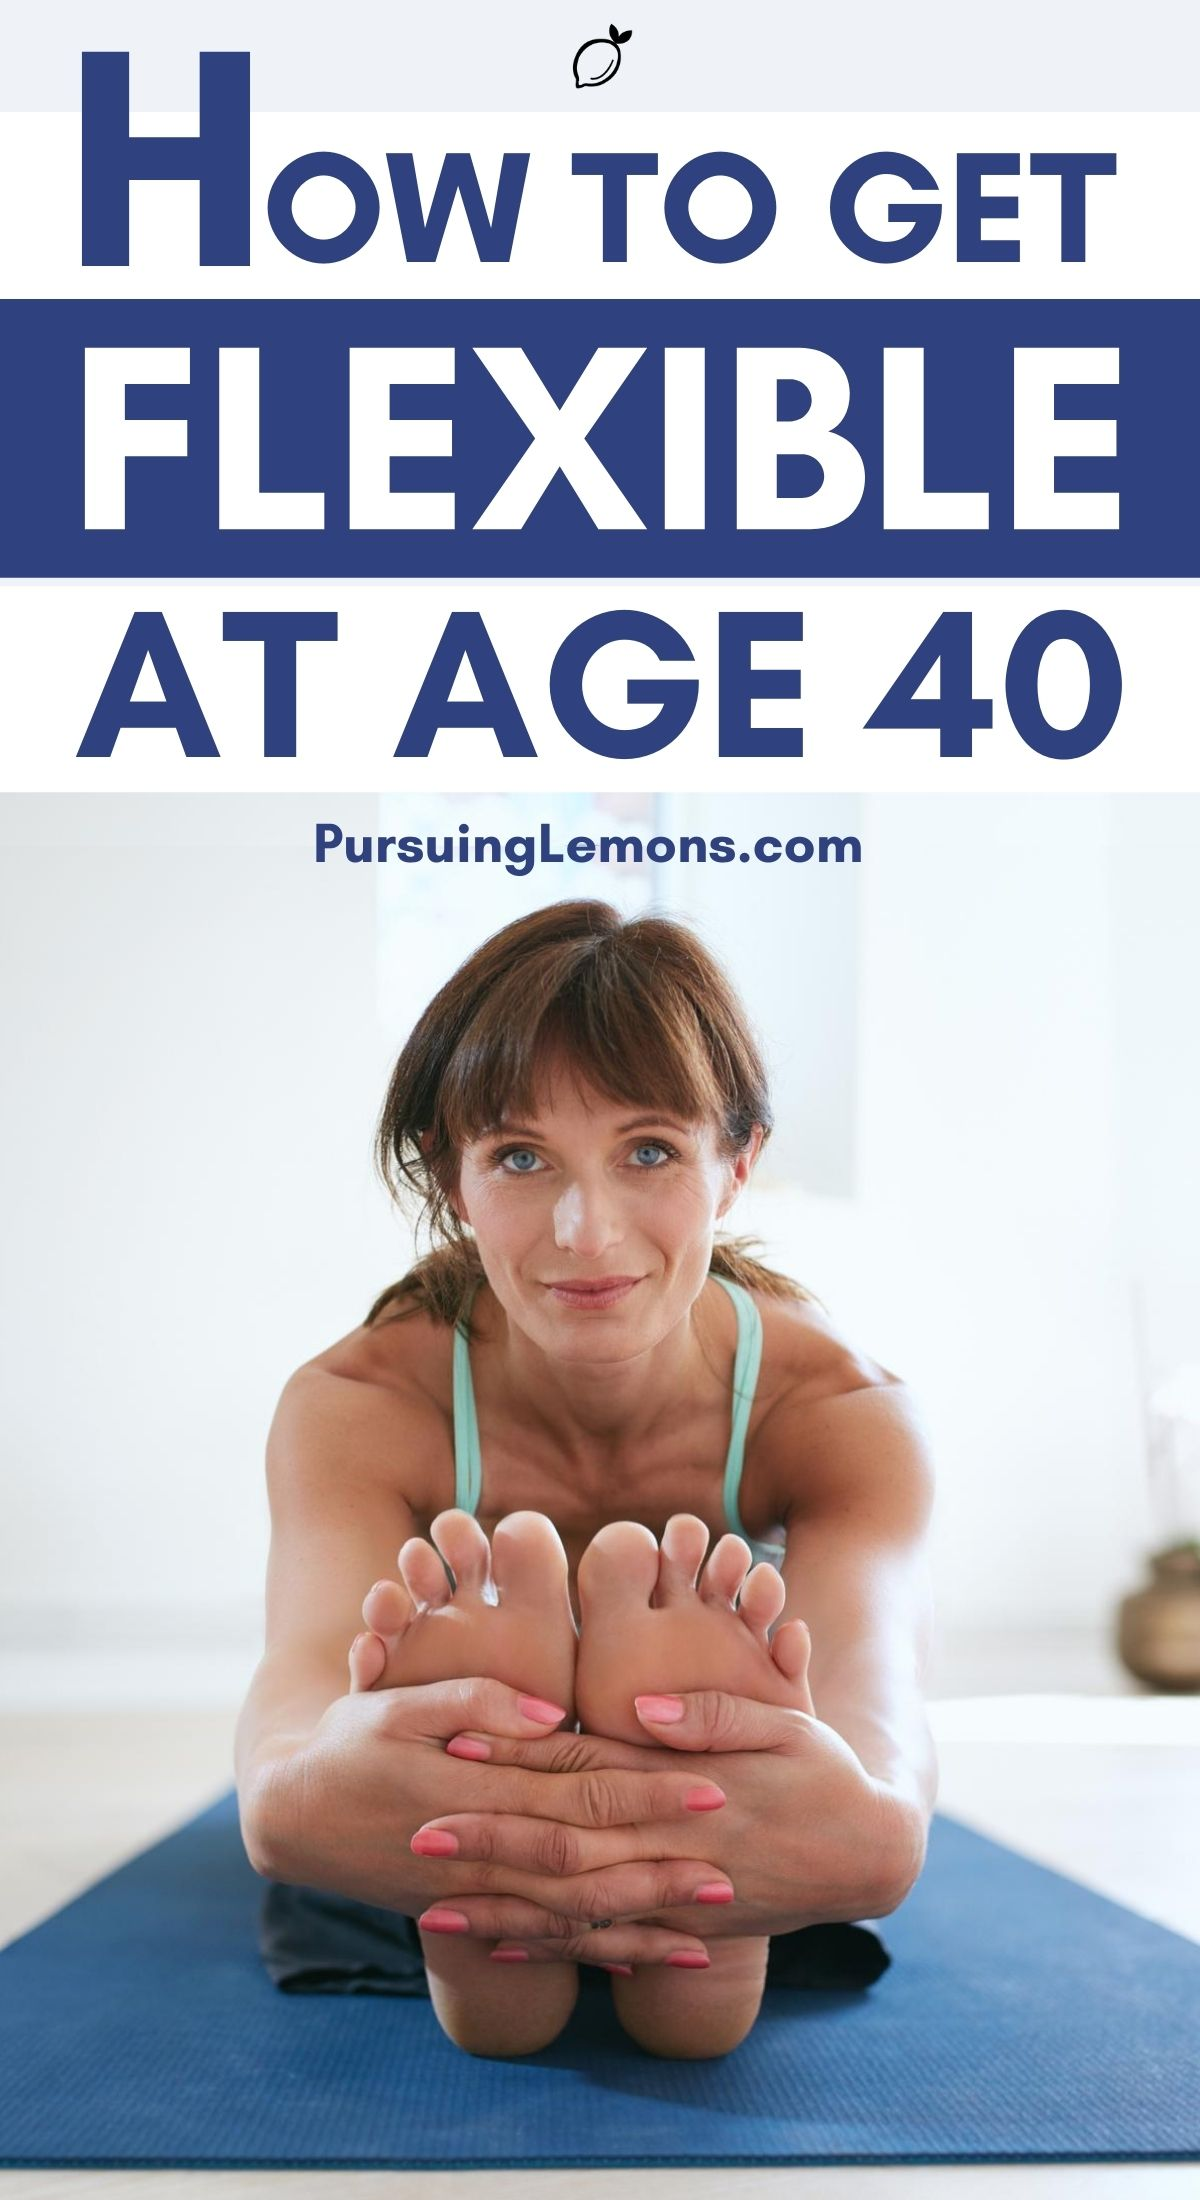 How To Get Flexible At Age 40 | As we age, we get stiffer and this restricts our movement or causes aches all over our body. Having good flexibility improves posture and relieves nagging body aches. Here are the 7 yoga poses you can easily practice on your own and help you regain flexibility after 40! #flexibility #over40 #getflexible #yoga